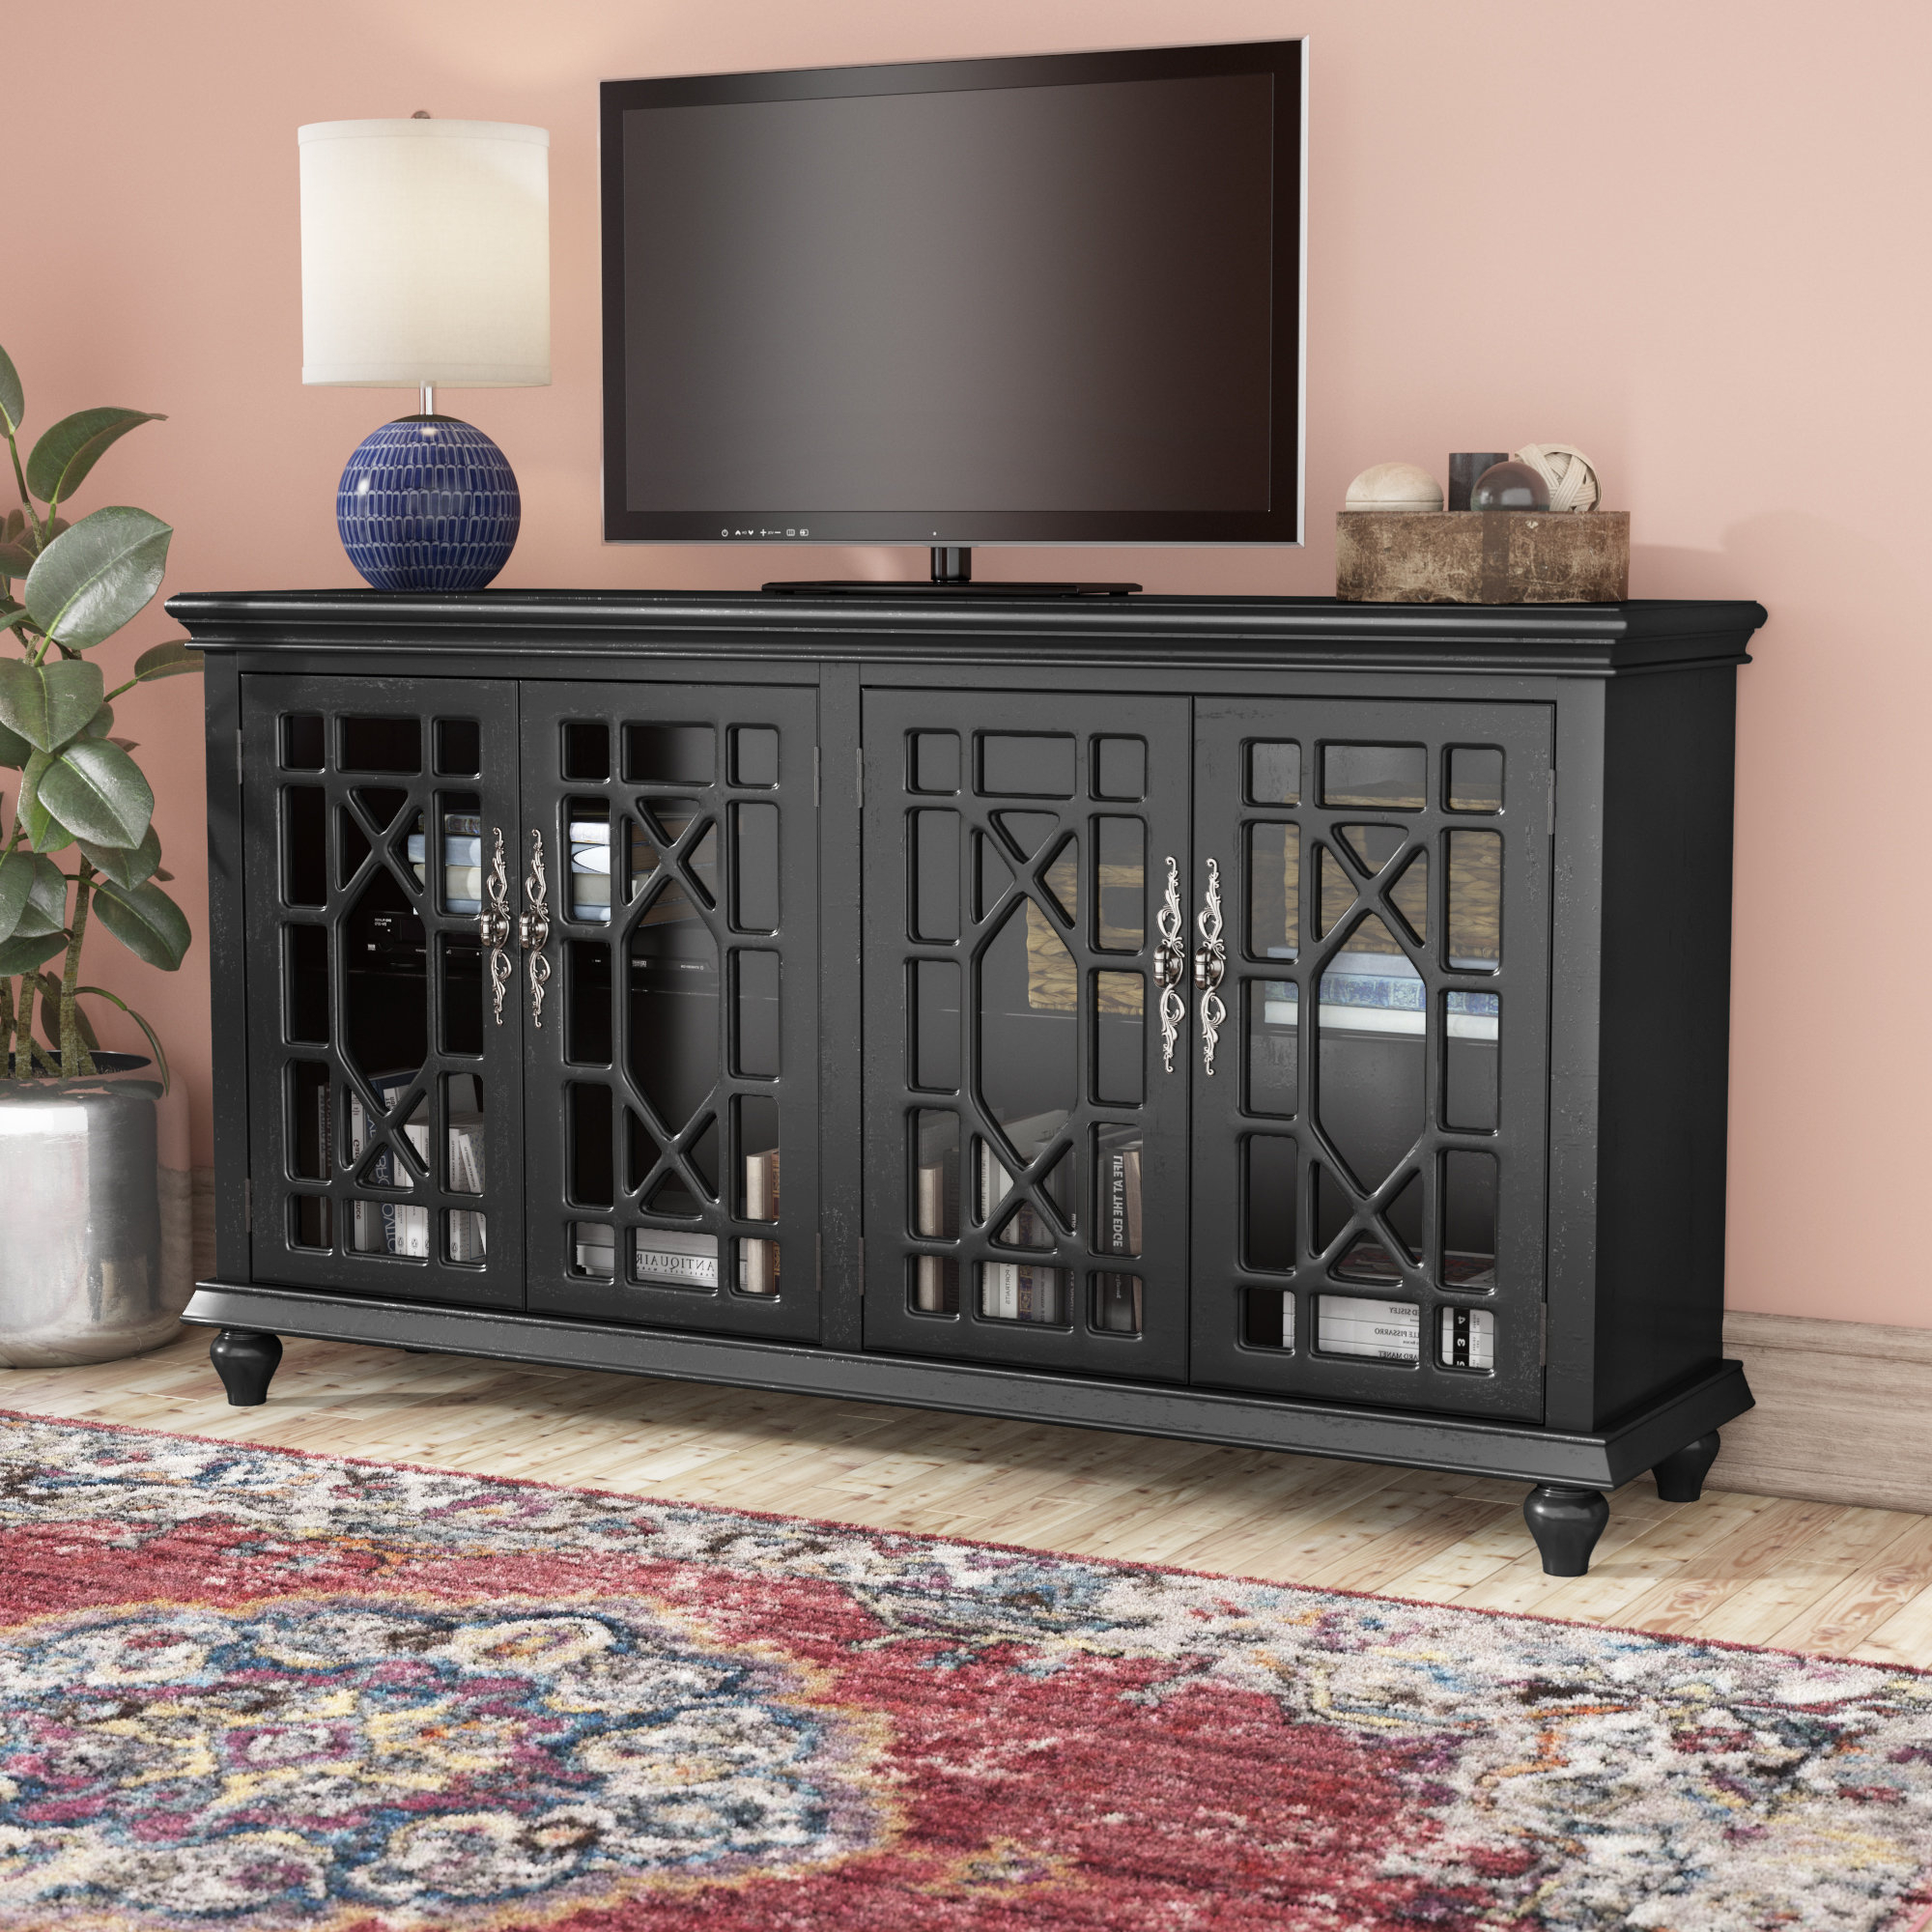 "Tv Stand Sideboard | Wayfair With Ericka Tv Stands For Tvs Up To 42"" (View 13 of 20)"